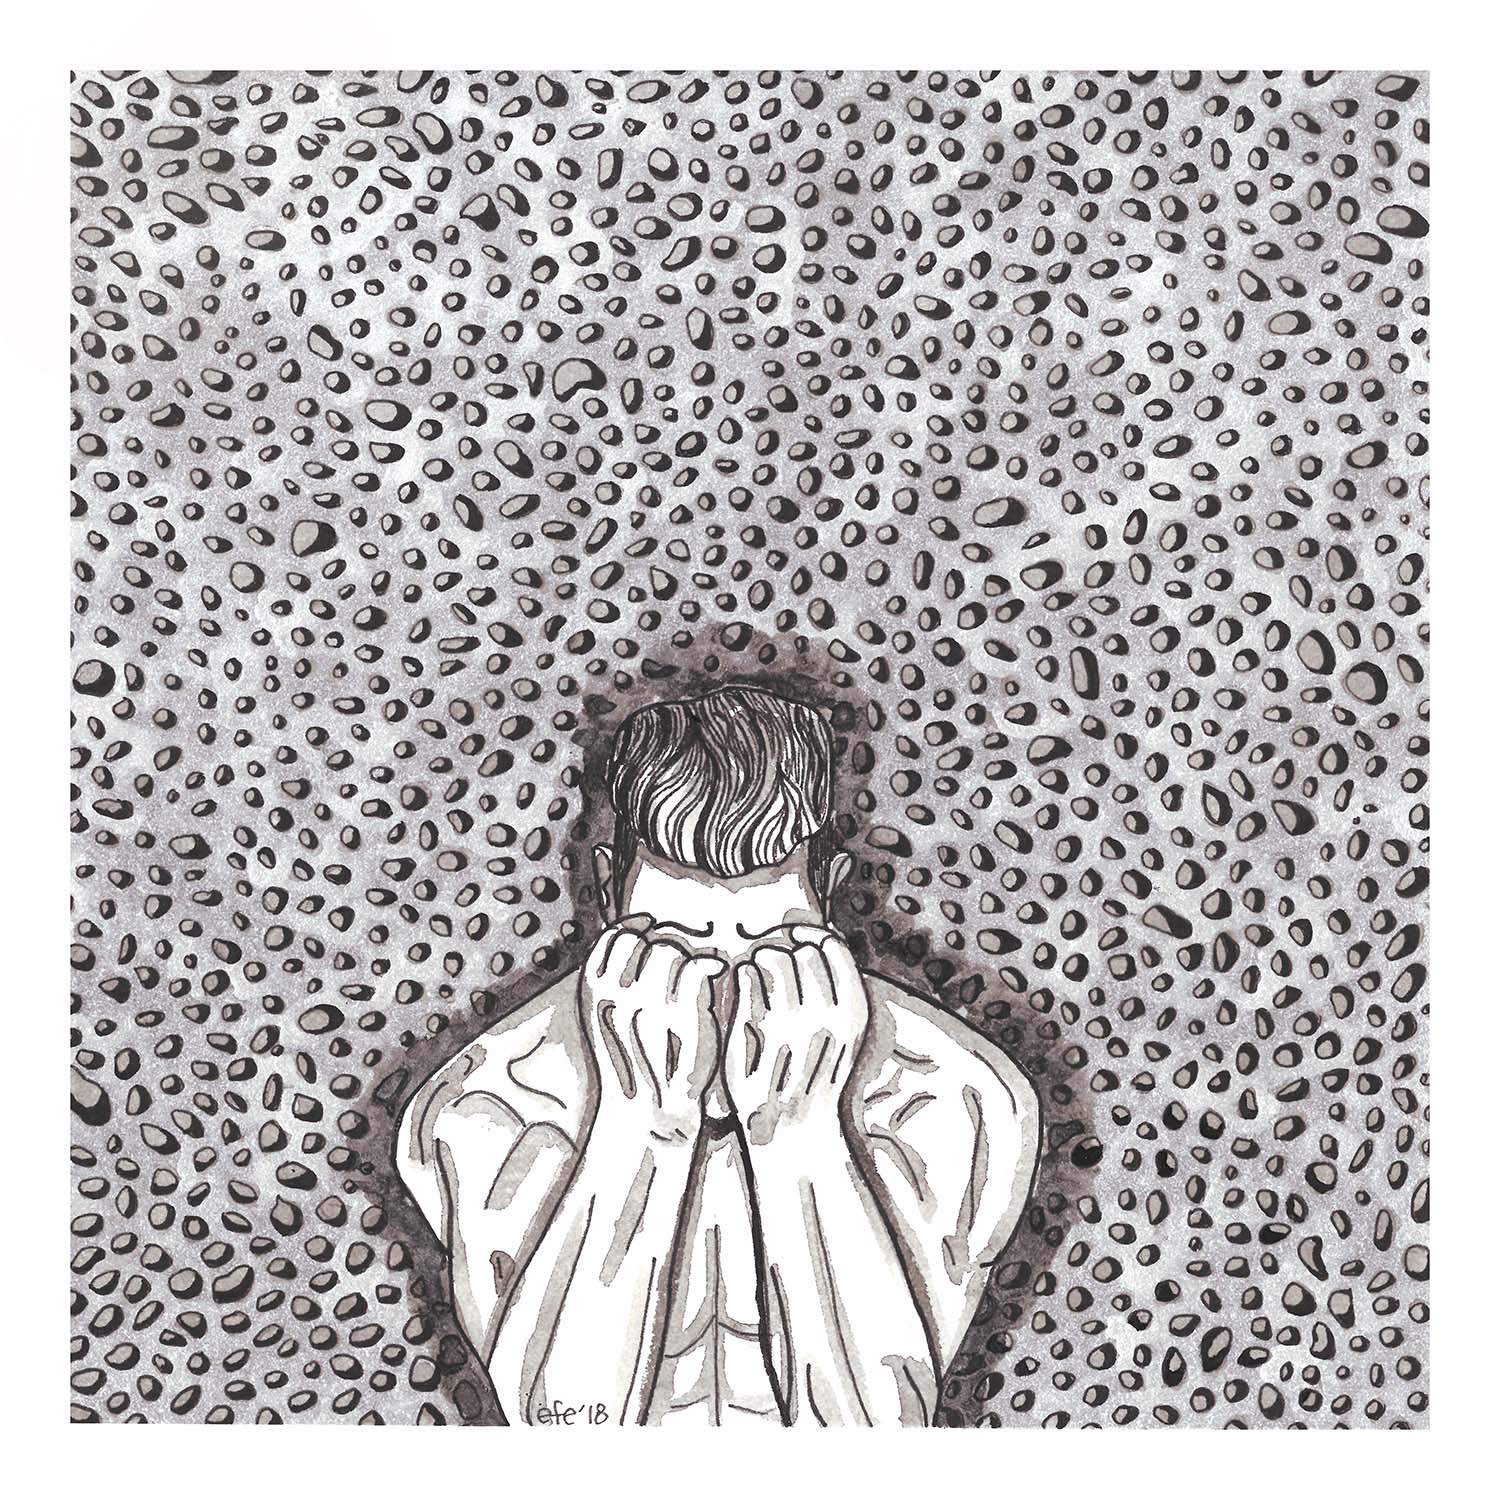 Day 06 - Trypophobia